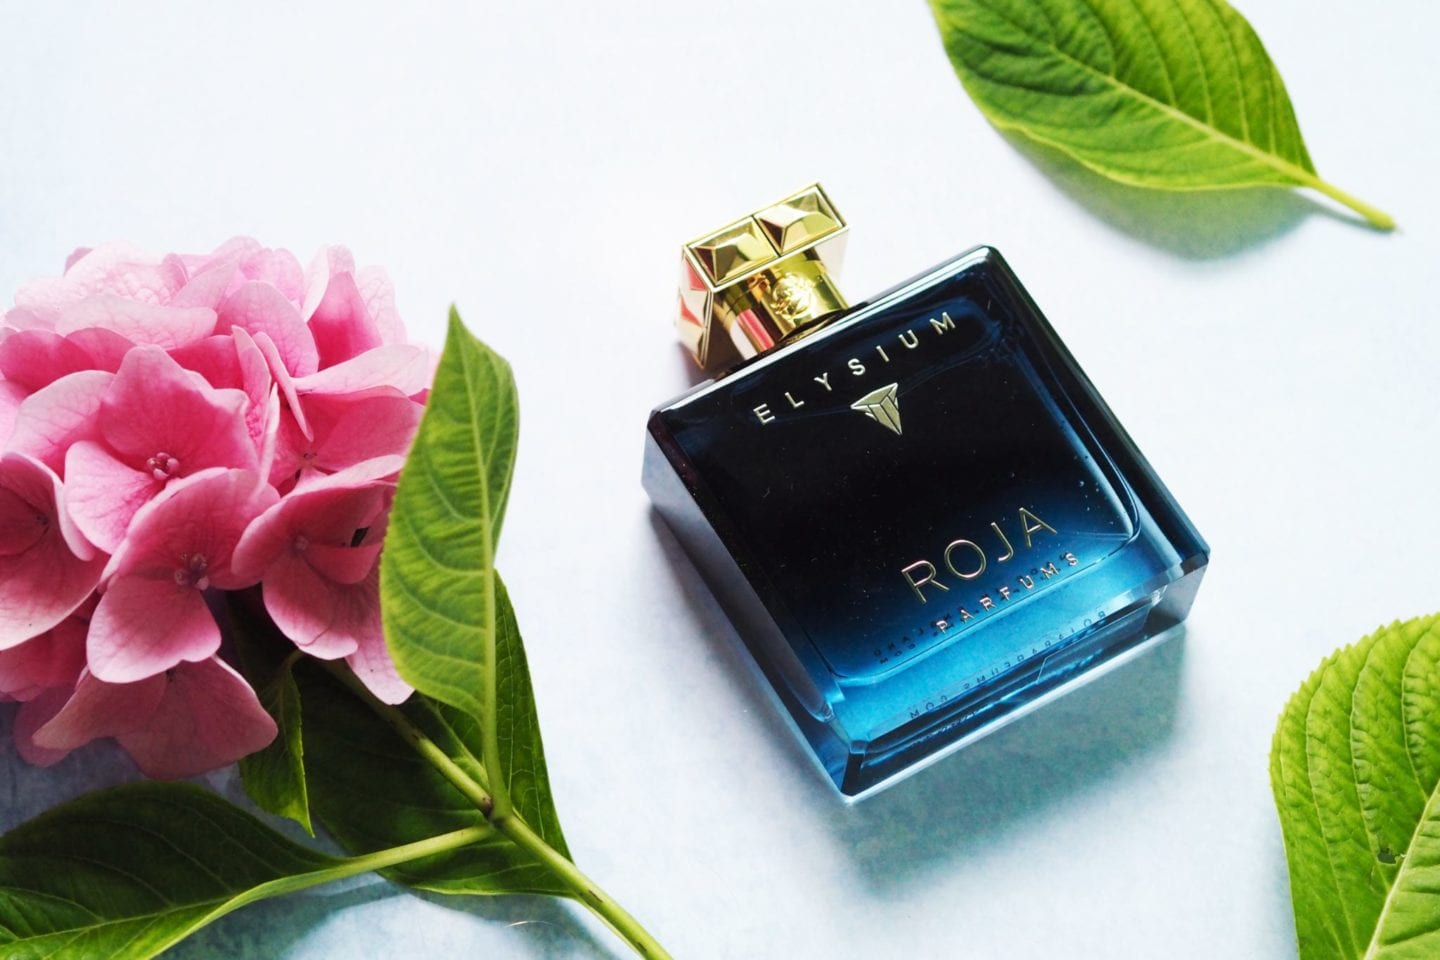 Roa-Elysium-perfume-review cologne mens